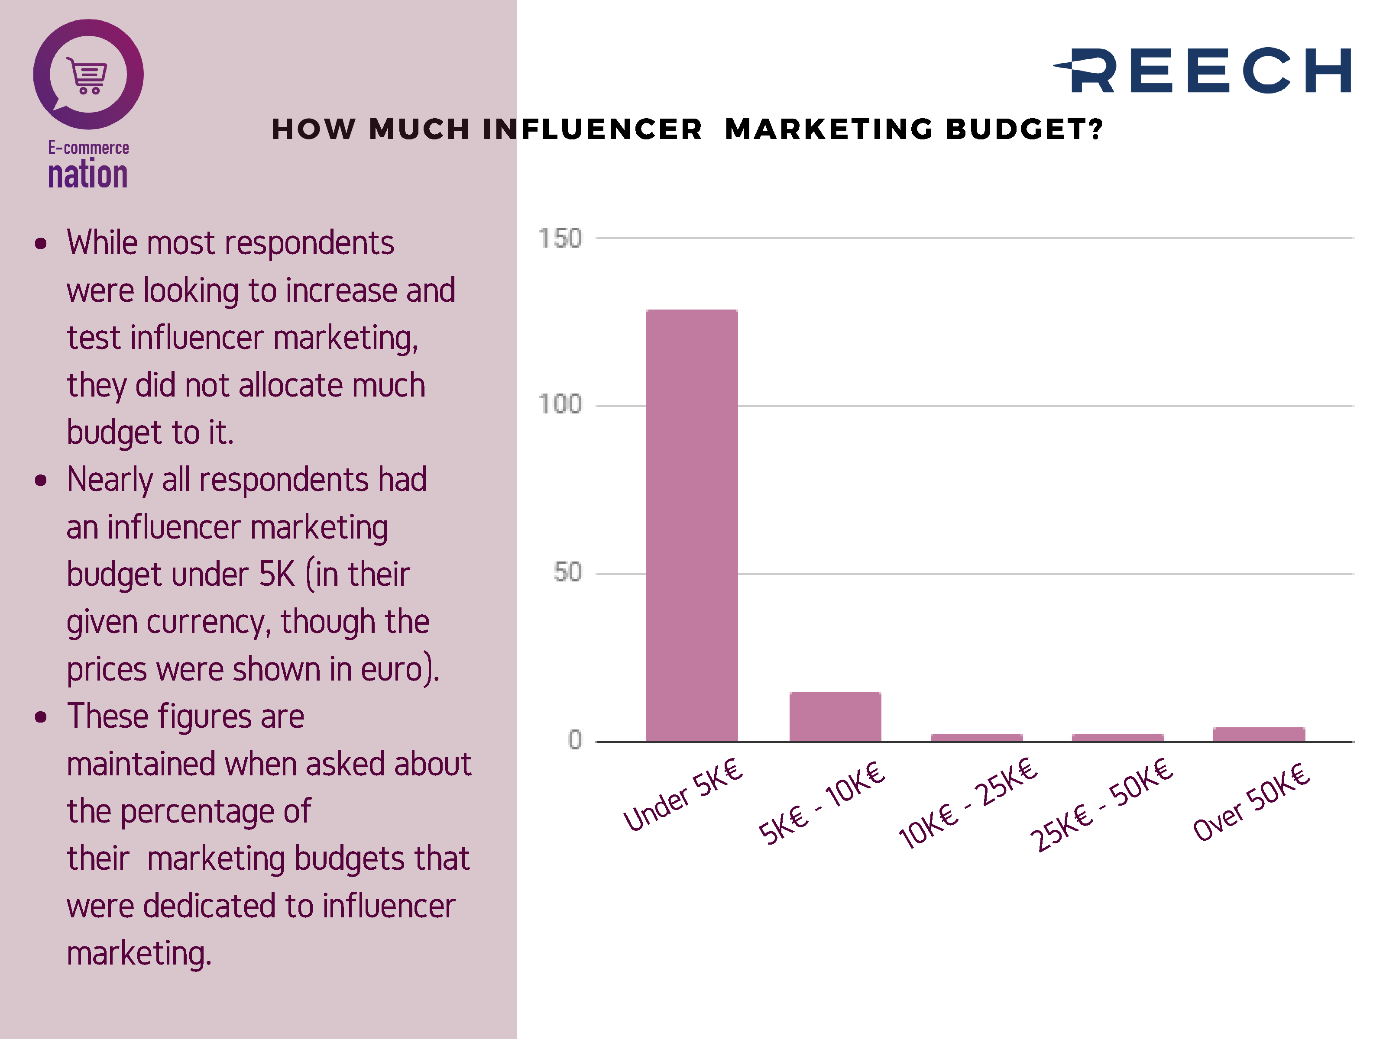 reech influencer marketing budget